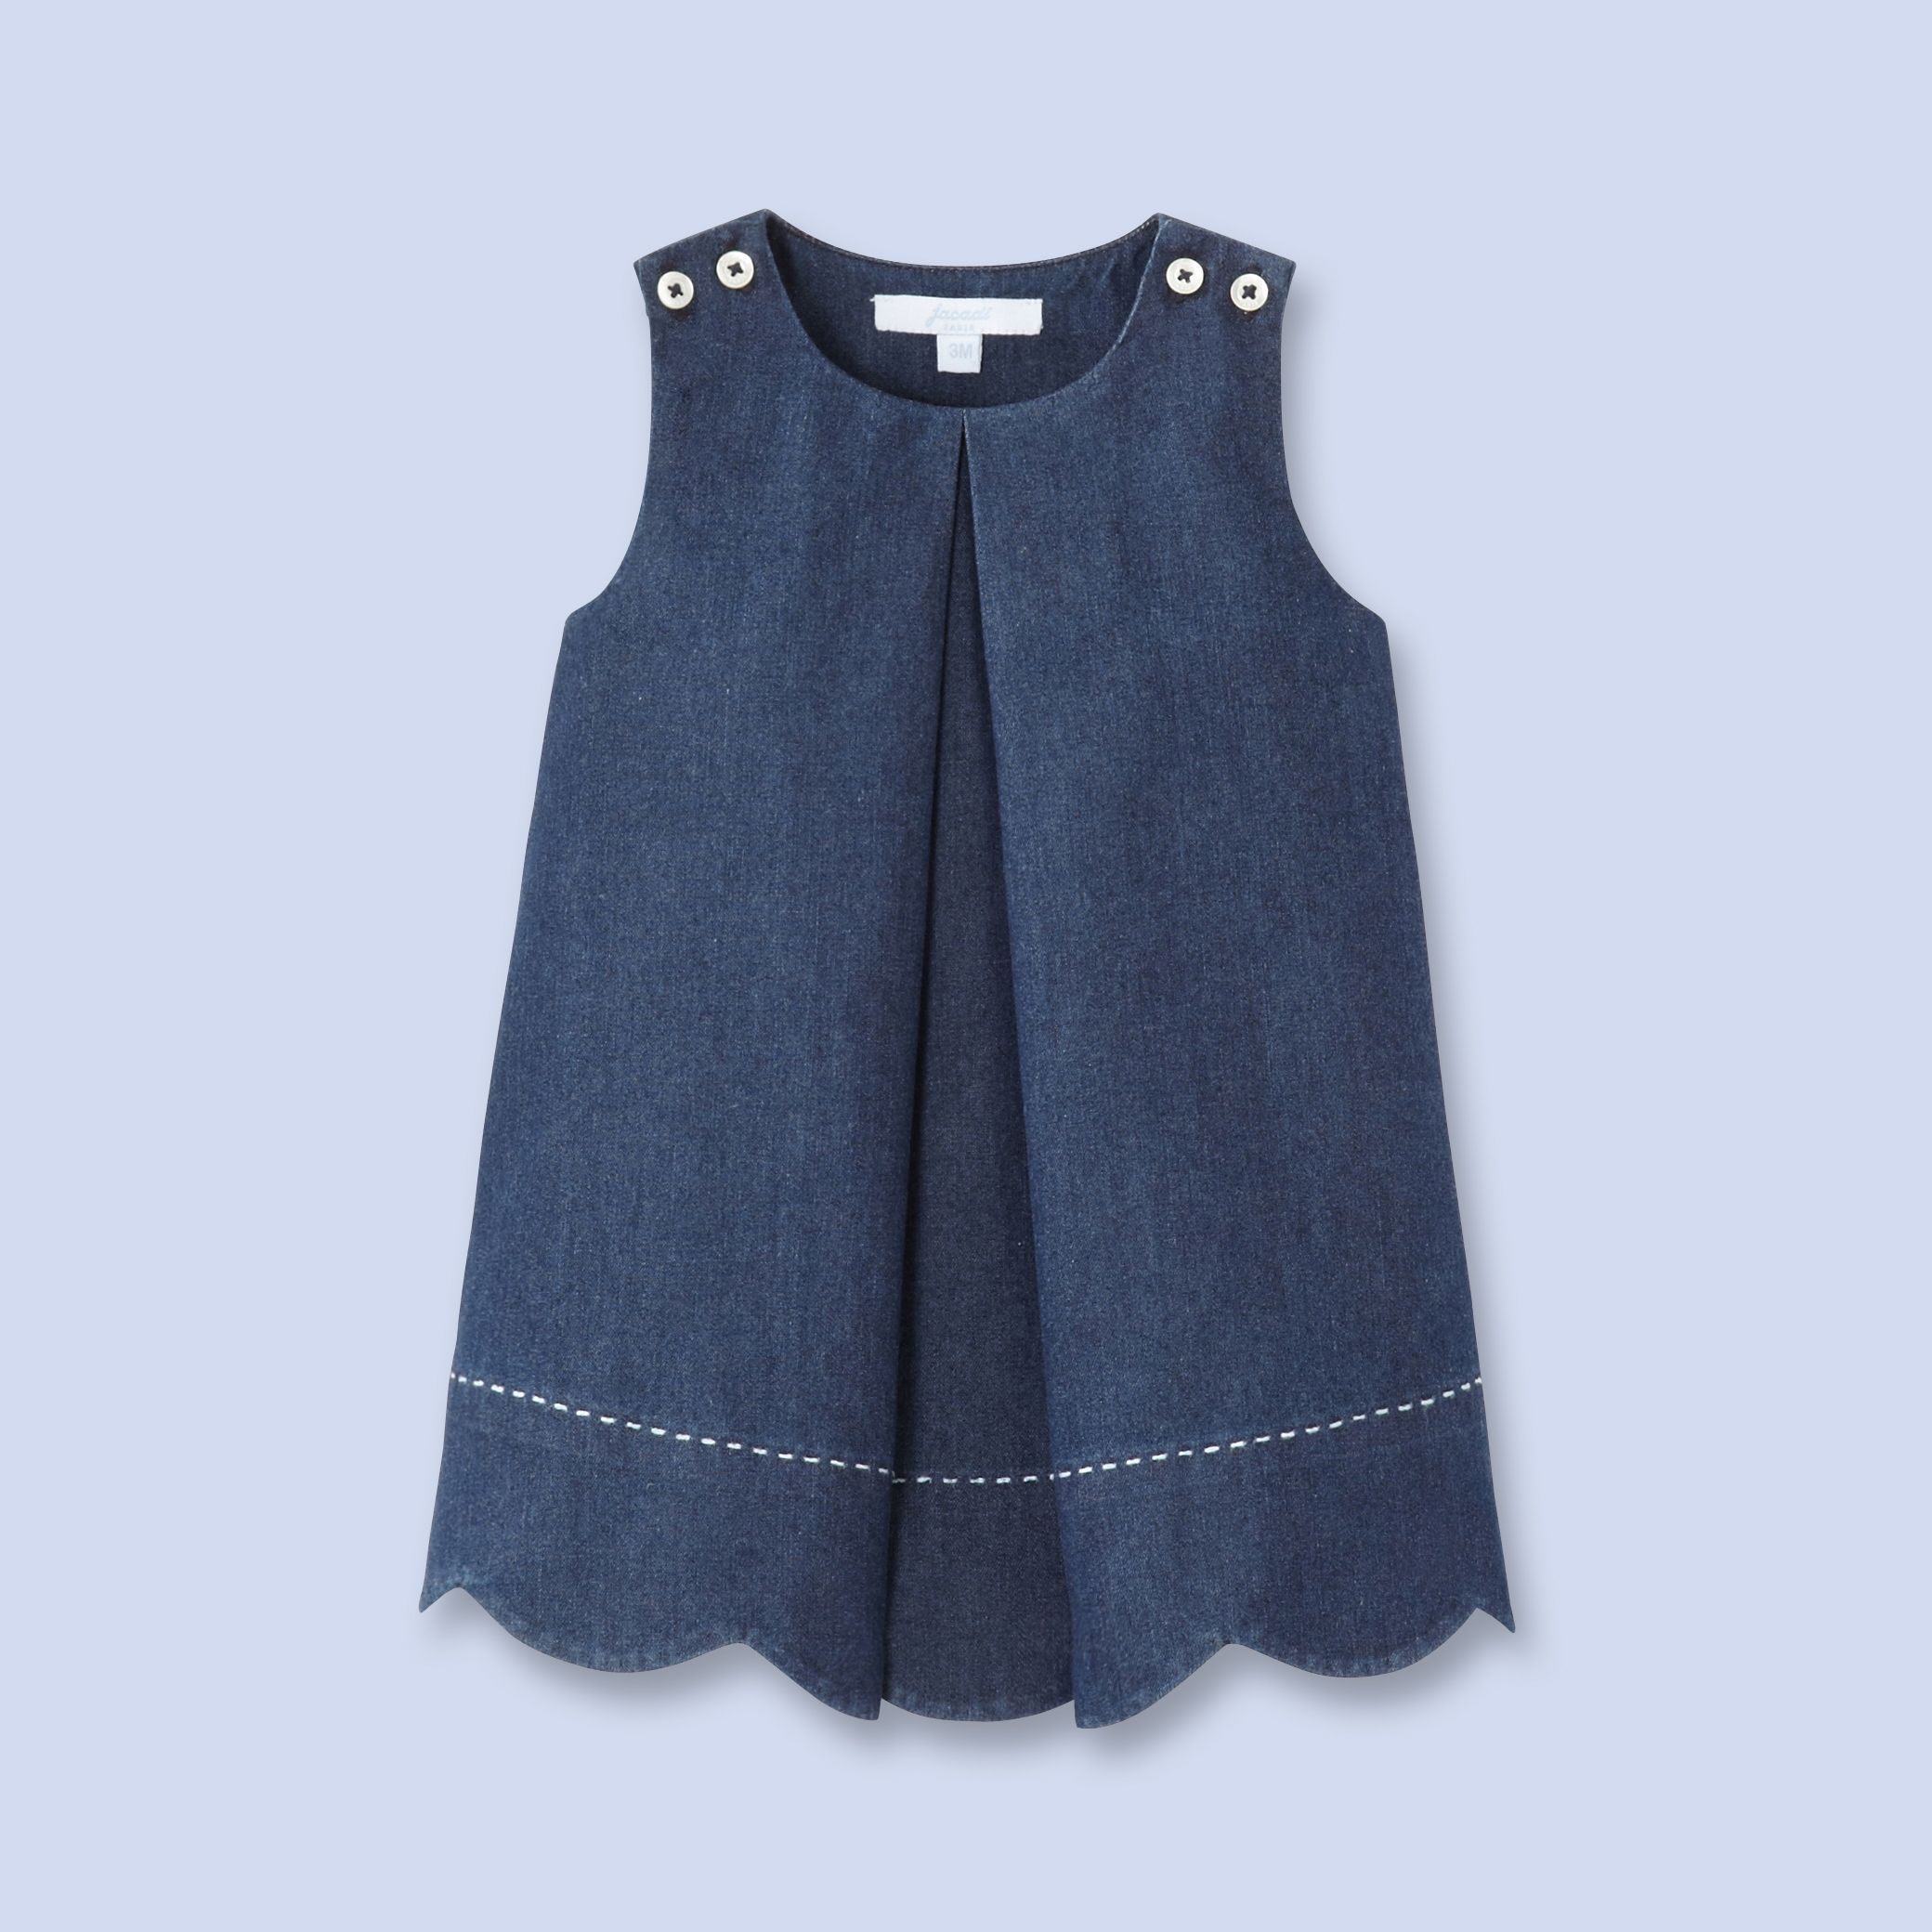 Topstitched denim dress for baby, girl